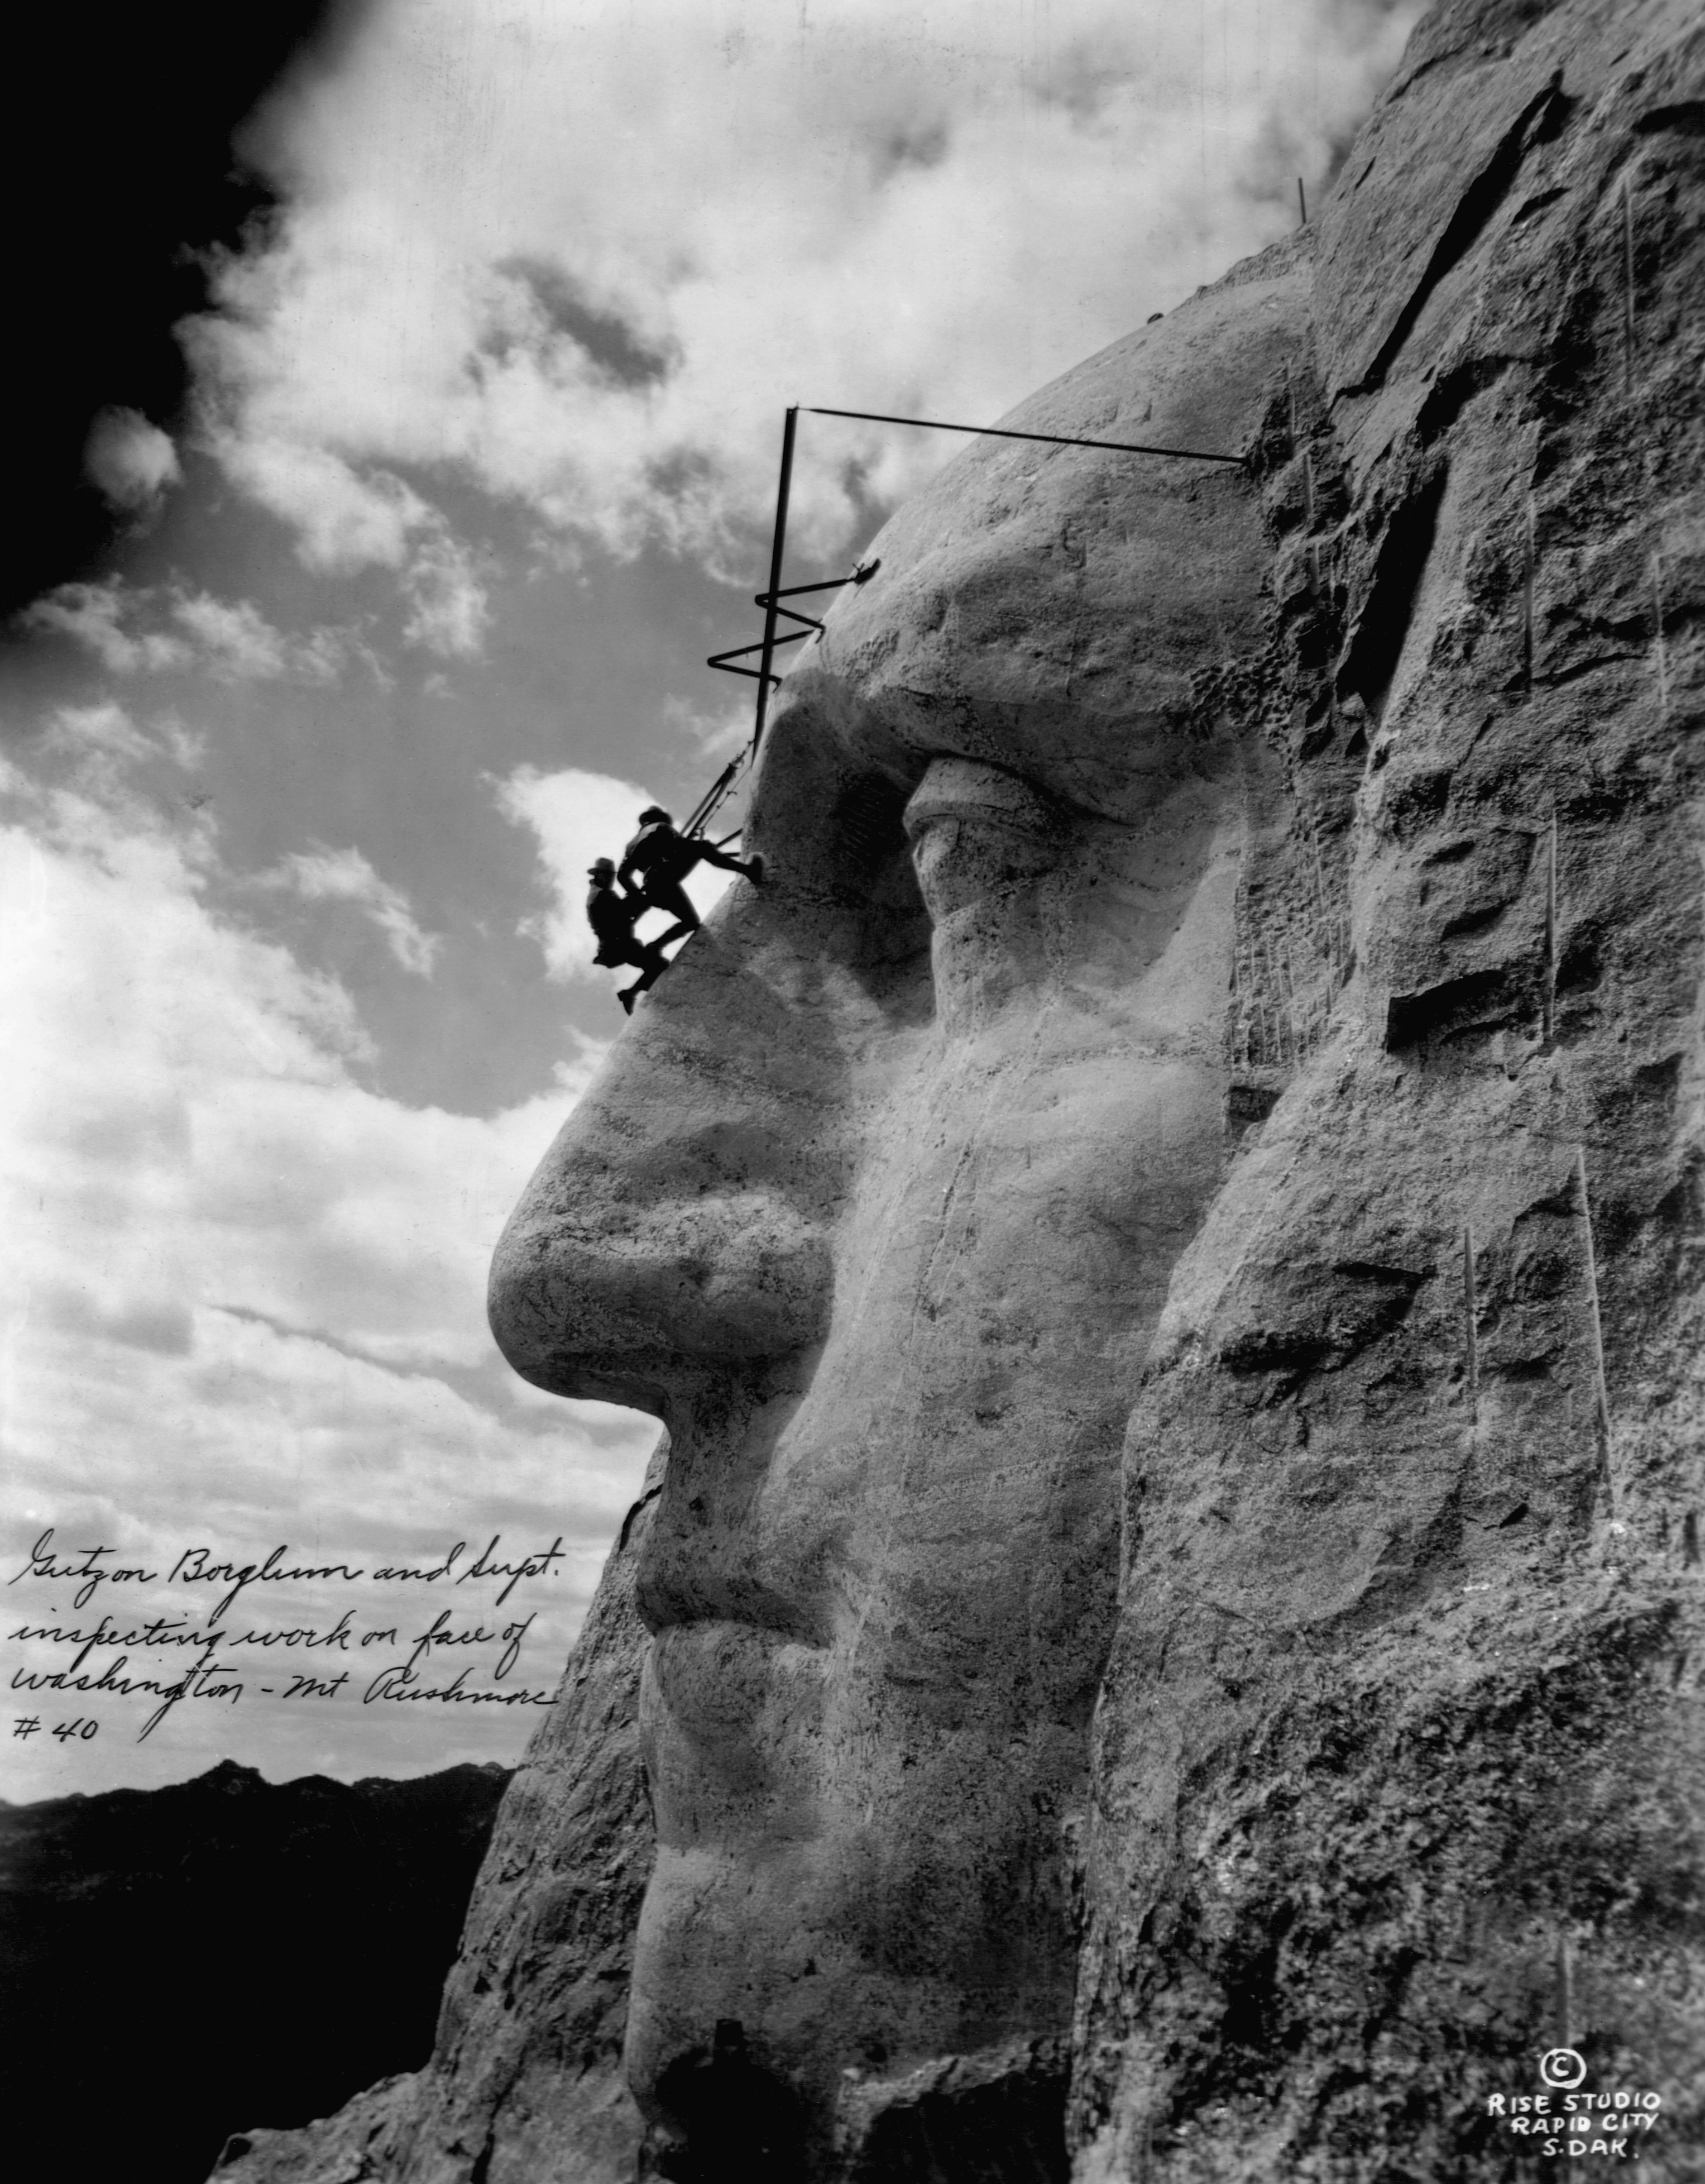 Gutzon Borglum and another man hang from the sculpted forehead of President George Washington on Borglum's famous monumental sculpture at Mount Rushmore in the Black Hills area of Keystone, S.D. on May 31, 1932.